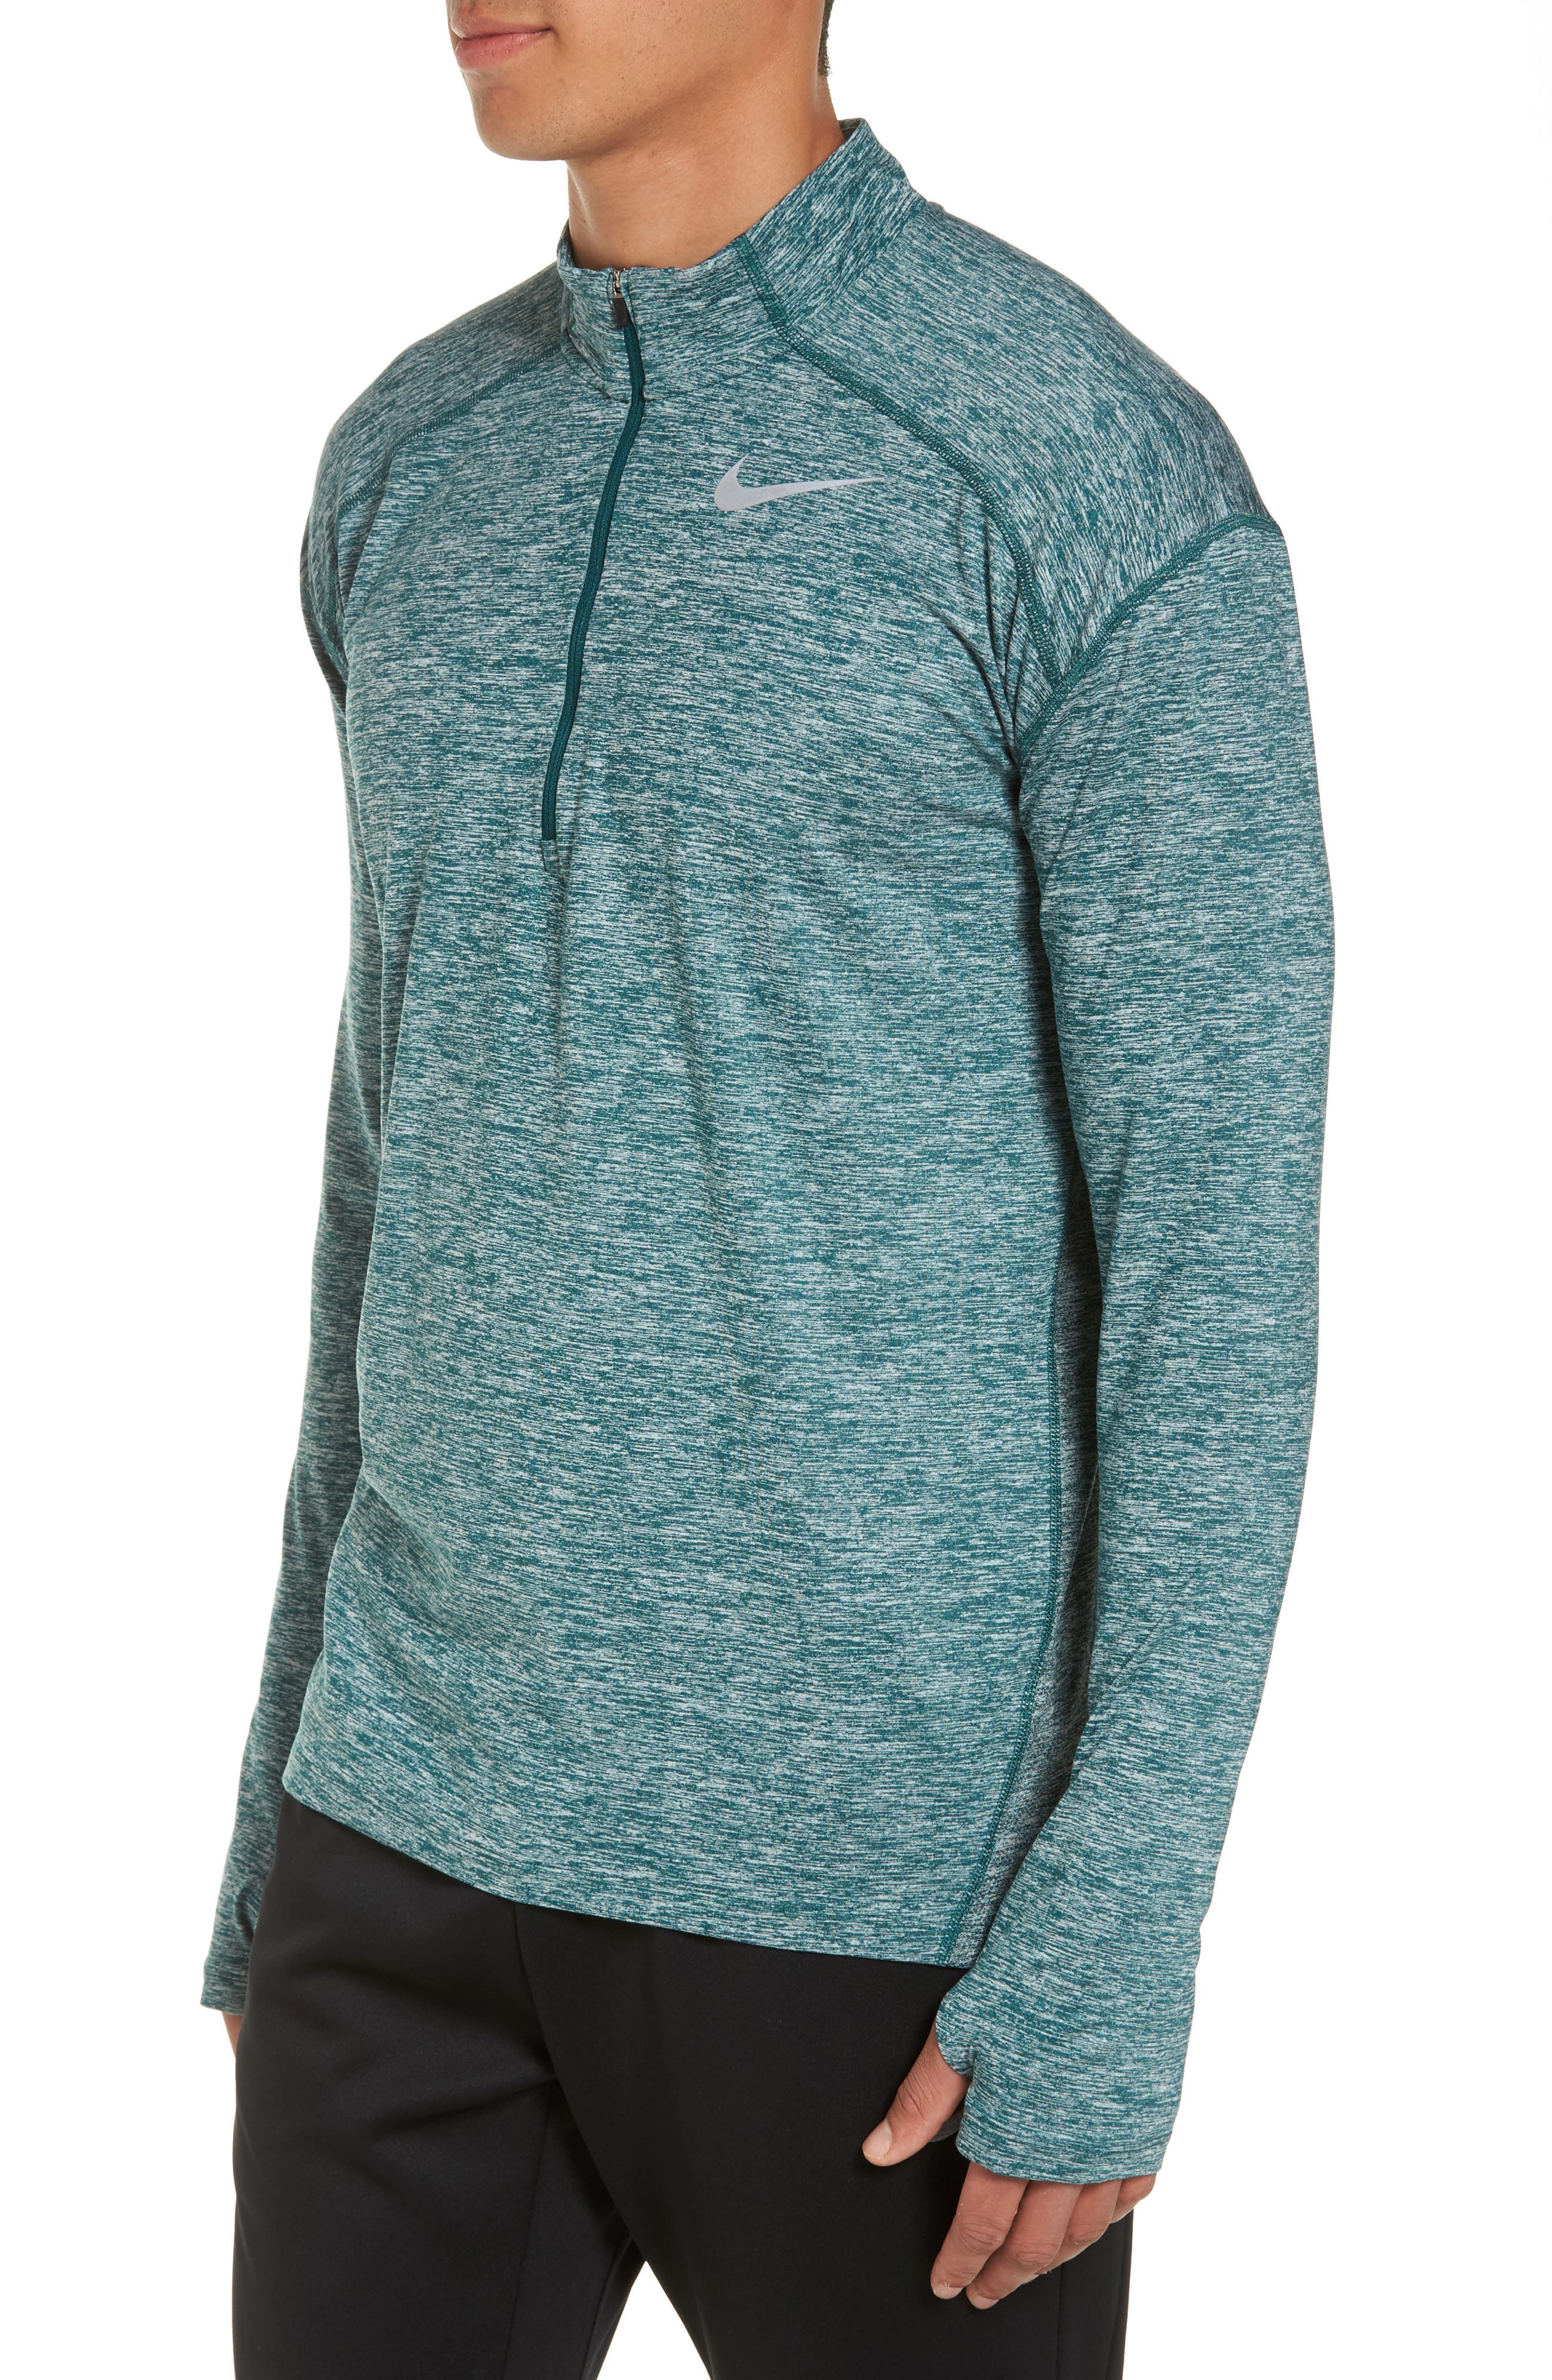 Dry Element Running Top,                             Alternate thumbnail 20, color,